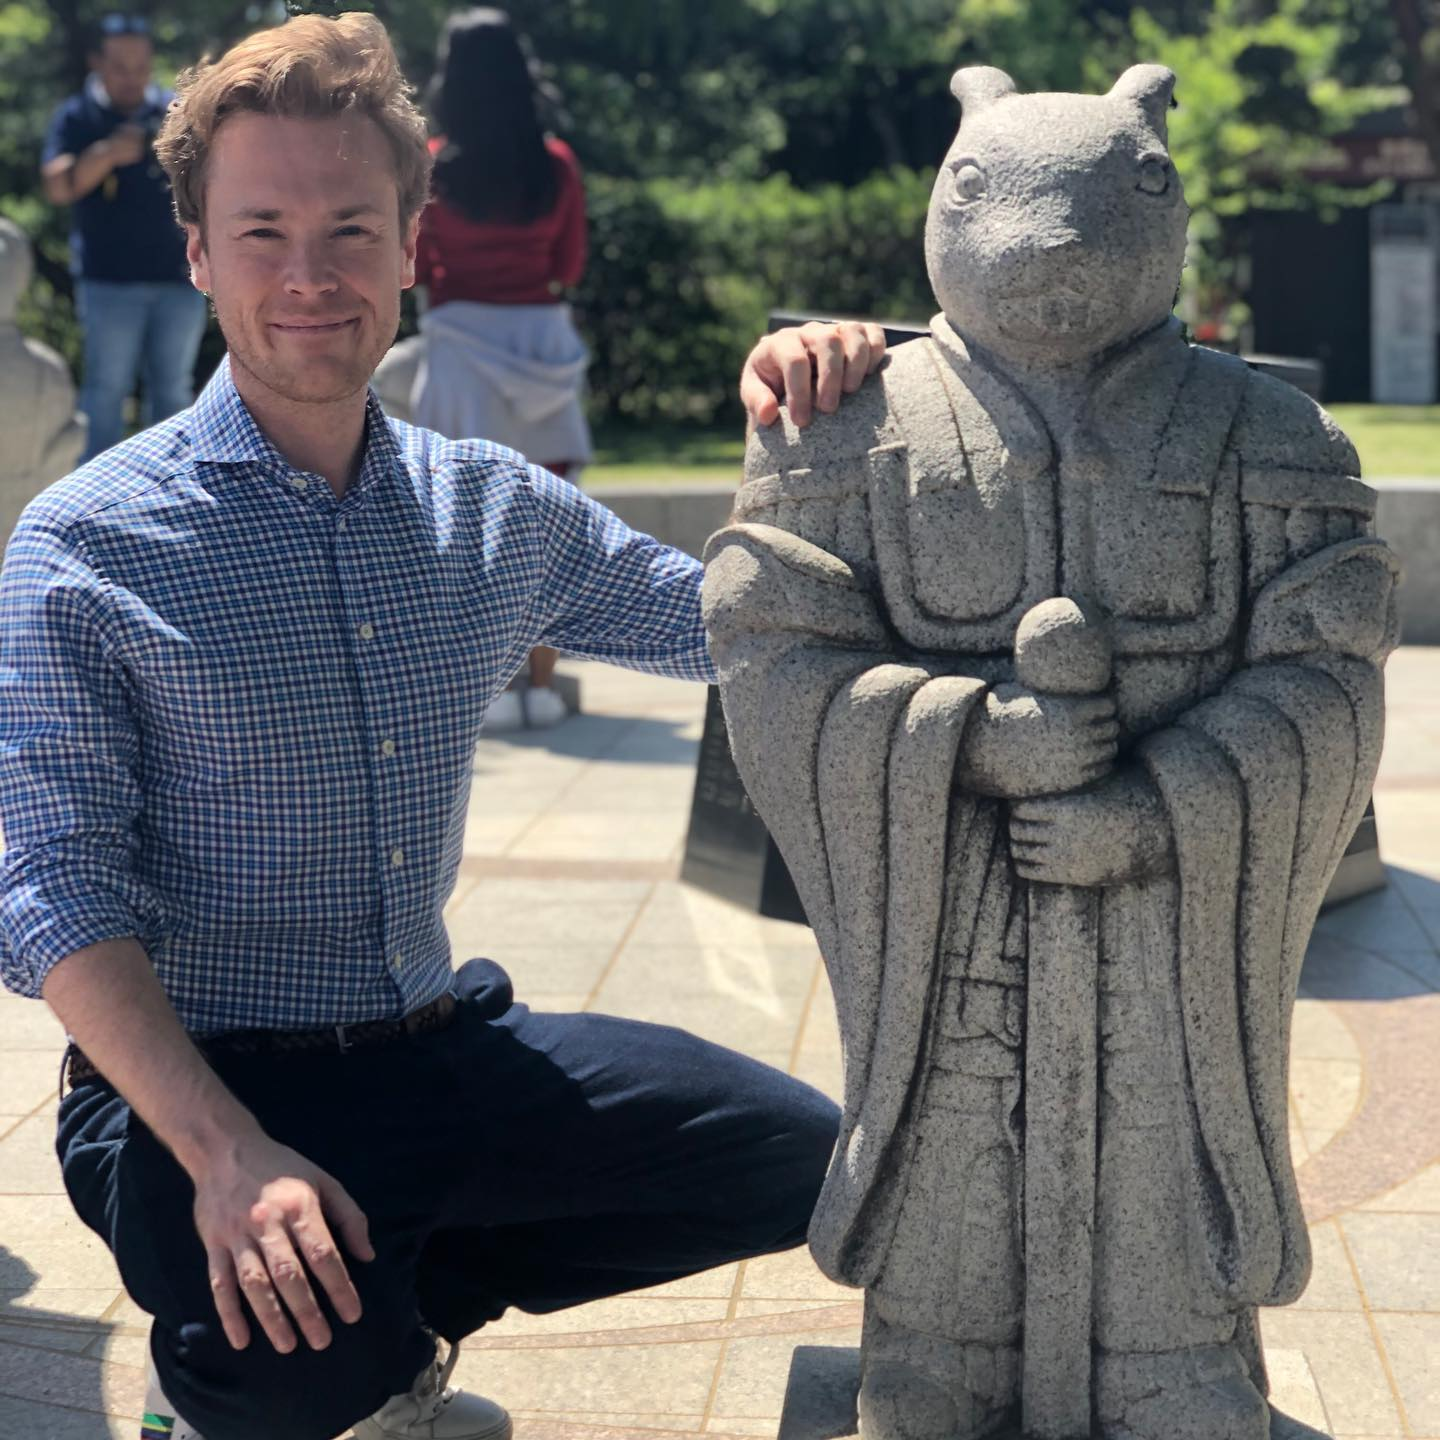 When I visited the Gyeongbokgung Palace in Seoul I saw a rabbit statue from the Korean Zodiac. This was a similar statue, albeit much smaller, to the one I saw at the Sik Sik Yuen temple in HongKong.  Apparently the power of different animals were very important to the rulers of the Joseon Dynasty (1392-1897) which is a defining period for Korean culture and identity. That is why the Gyeongbokgung Palace has a lot of figures of animals.  Each of the animals have their own special personality and symbolic meaning, and what they represent can be largely divided into five categories: the king's authority and dignity, auspicious signs, the law and justice, lucky symbols and protection from evil spirits, and the universe.  As for the Rabbit, he is a lucky symbol signifying long life, peace and well-being, and happiness. The Rabbit is also one out of Twelve Earthly Branches that shows that the universe is a fusion of time and space. Therefore, the rabbit statue next to me on the photo at Geunjeongjeon Hall in Gyeongbokgung Palace is a symbol of the universe.  He might be small, but the symbolism is huge.